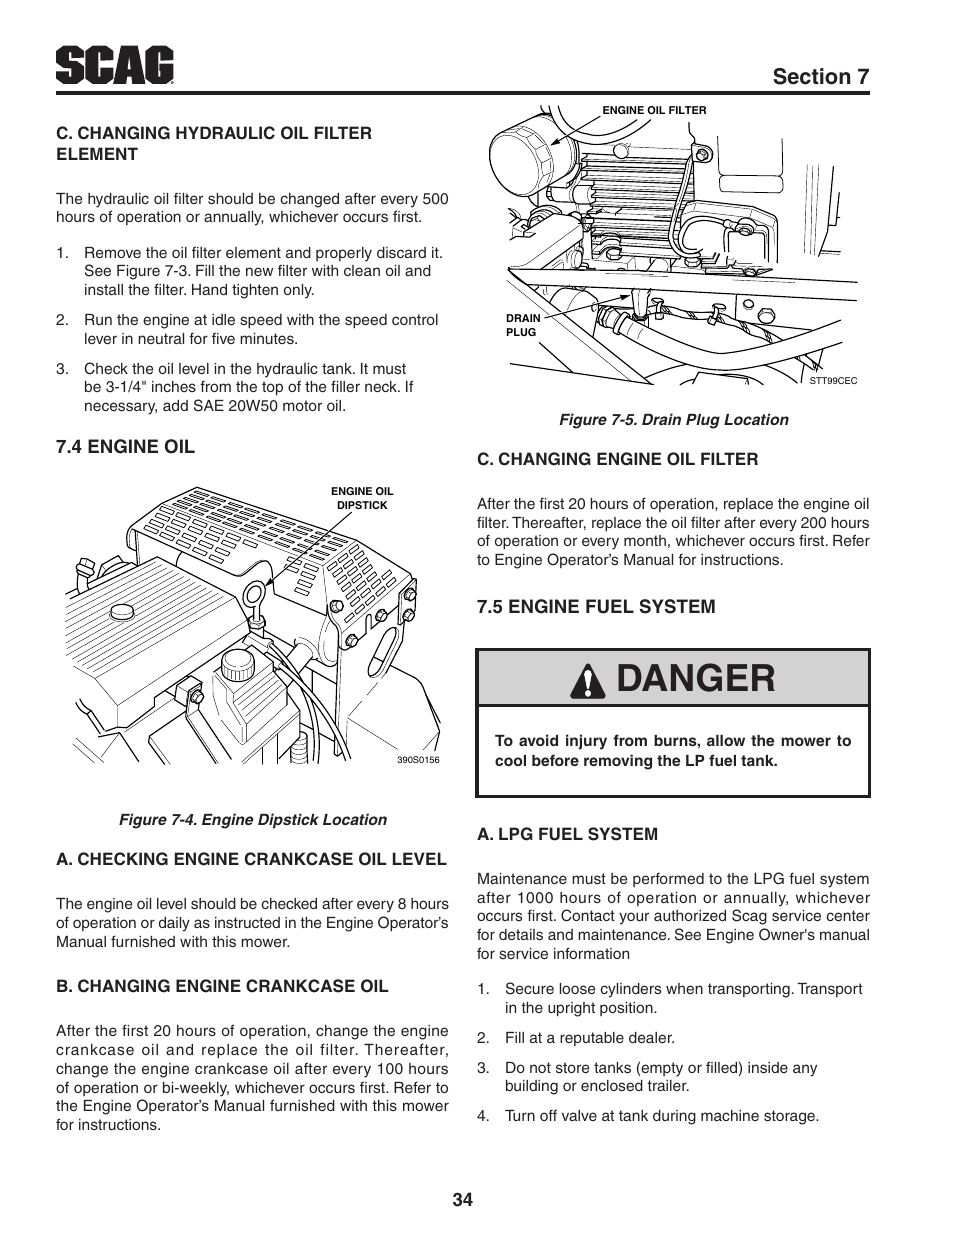 scag engine manual user guide manual that easy to read